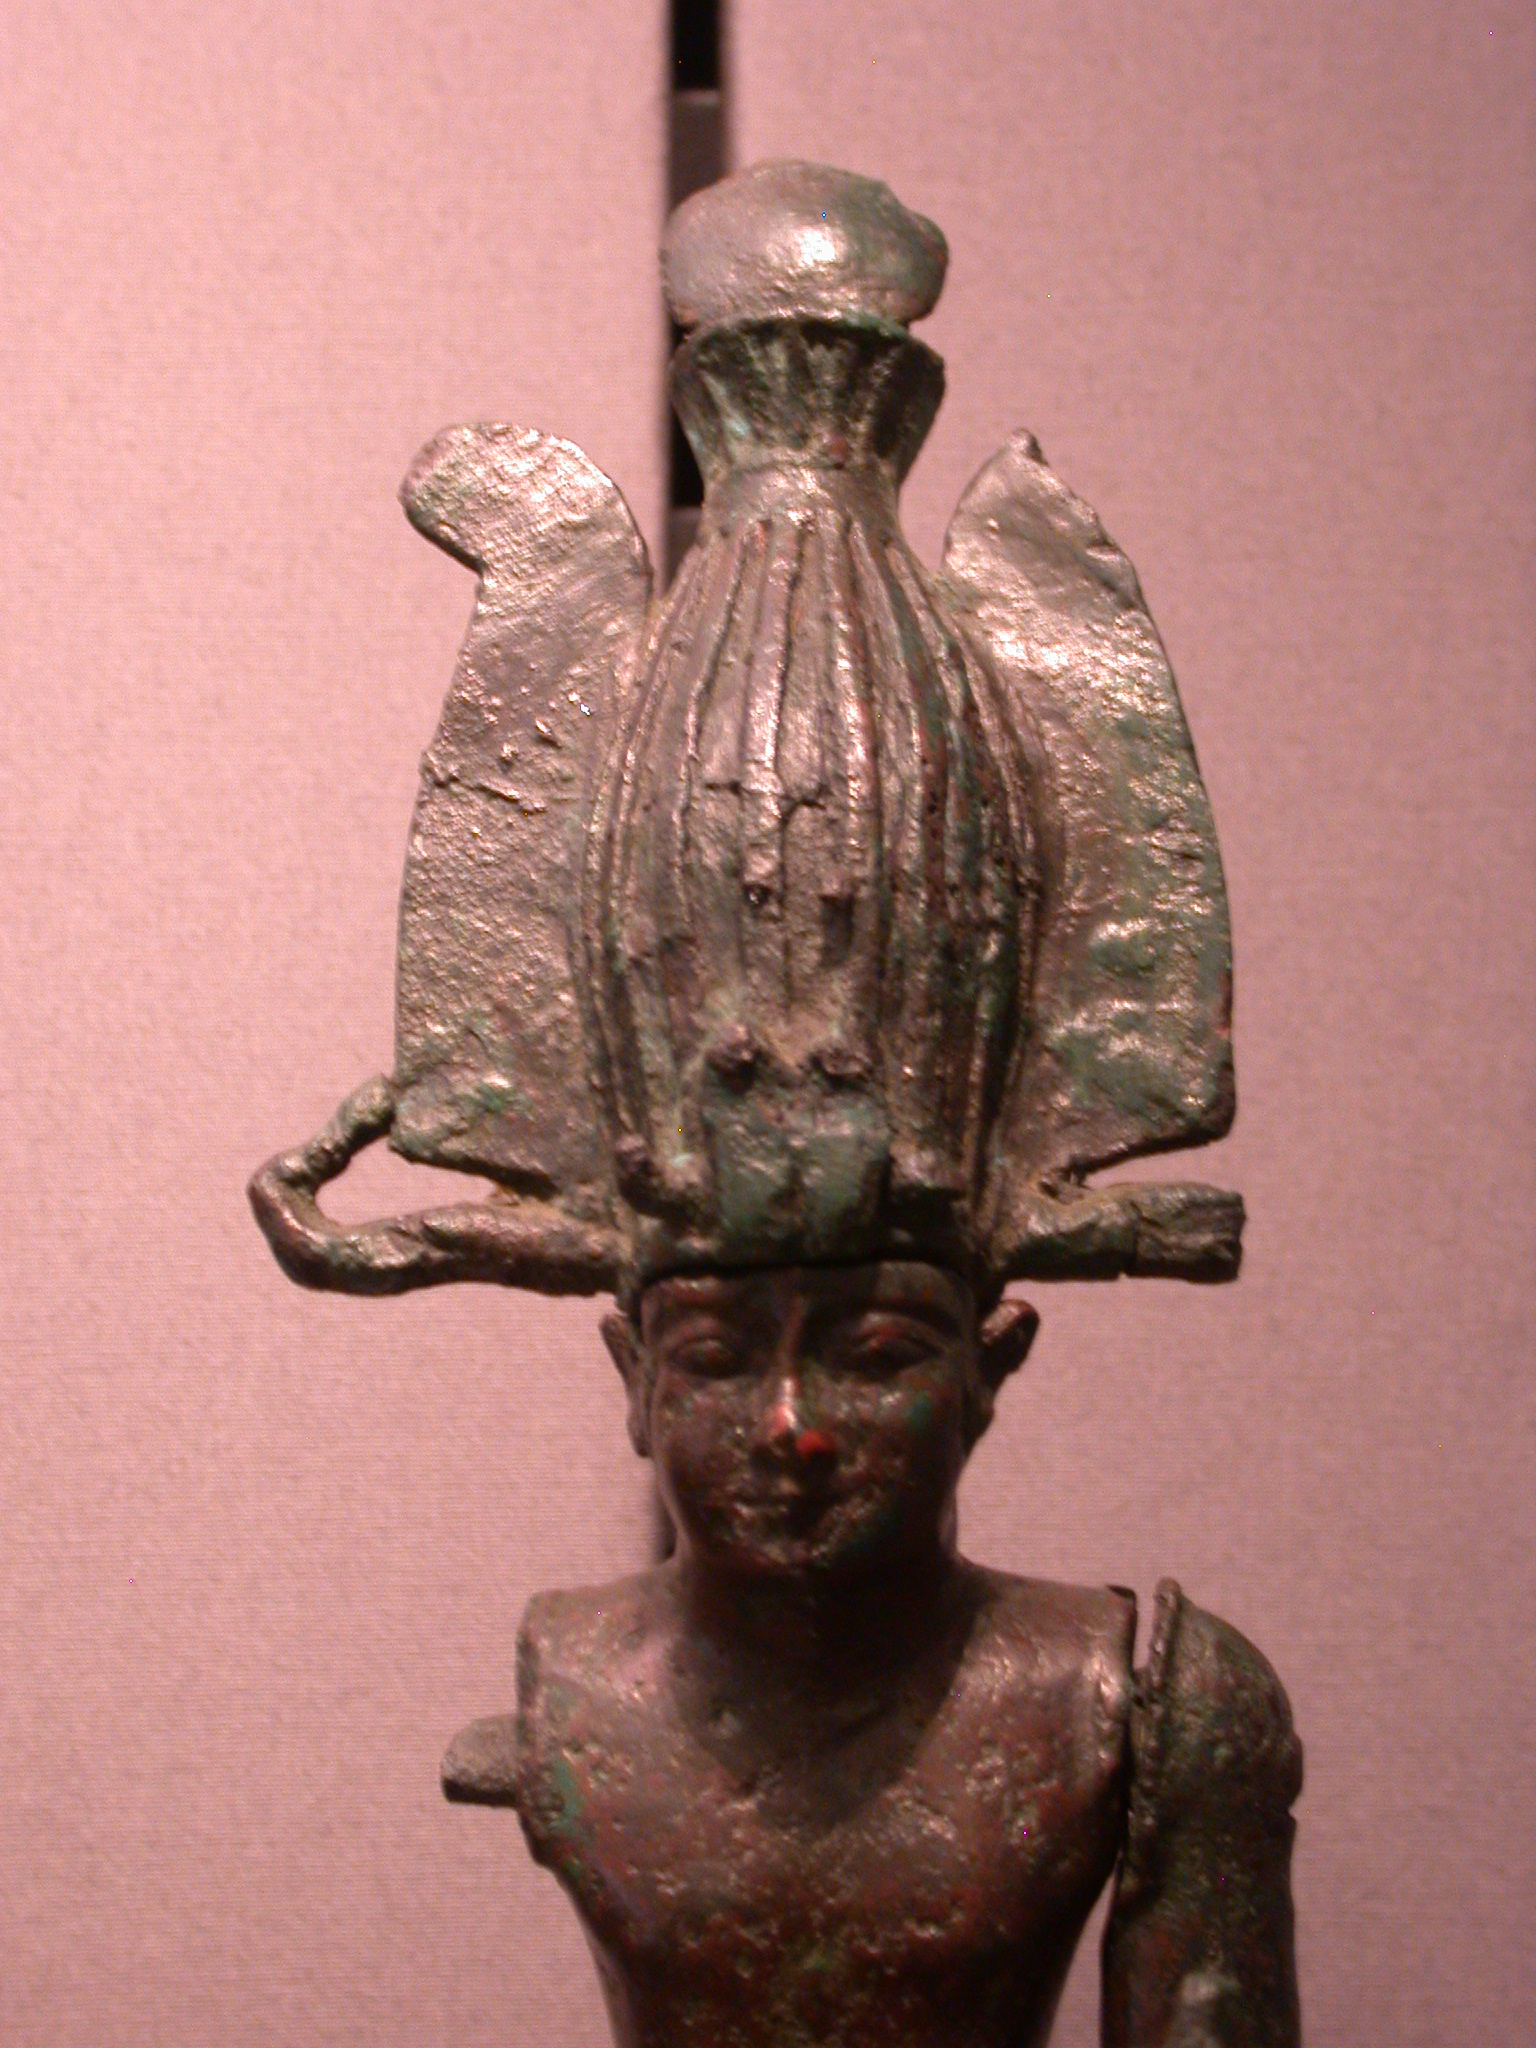 Detail of Figurine of Taharqa, Copper Alloy, 25th Dynasty, 690-664 BCE, Egypt, in Fitzwilliam Museum, Cambridge, England